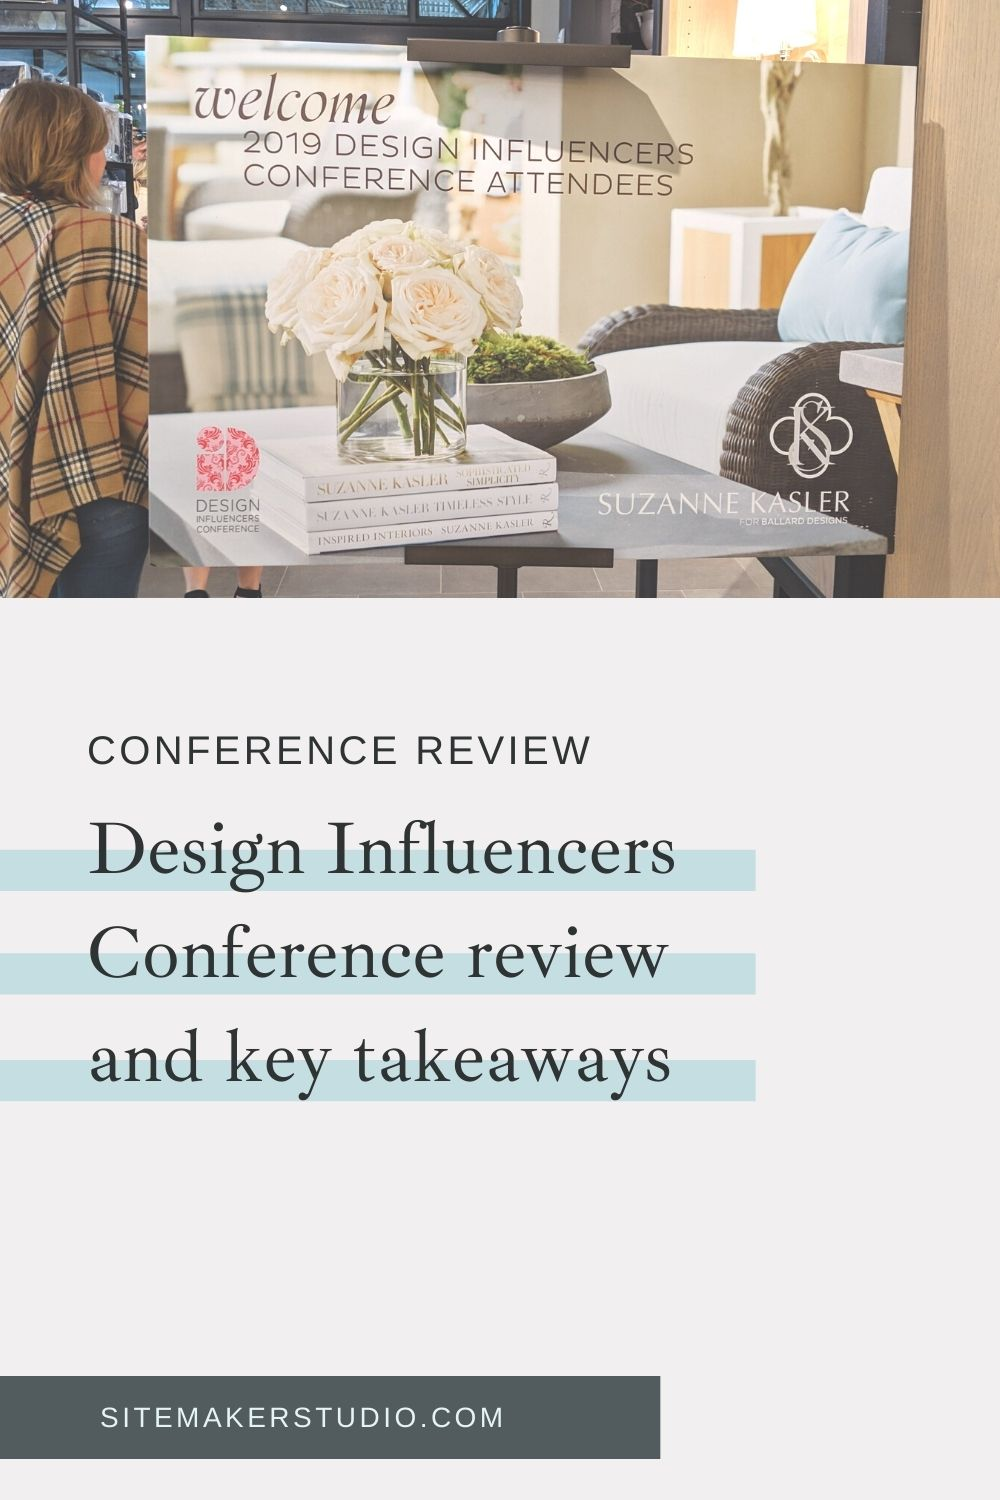 design influencers conference for interior designers to learn branding marketing pinterest analytics and more design influencers conference for interior designers to learn branding marketing pinterest google and more Video Review of the Design Influencers Conference for Interior Designers to learn #branding #marketing pinterest website analytics and more. I help Interior Designers build strategic and beautiful websites and knew this conference would be a huge hit. I learned a ton and made some sweet friends. Watch or read my entire review.